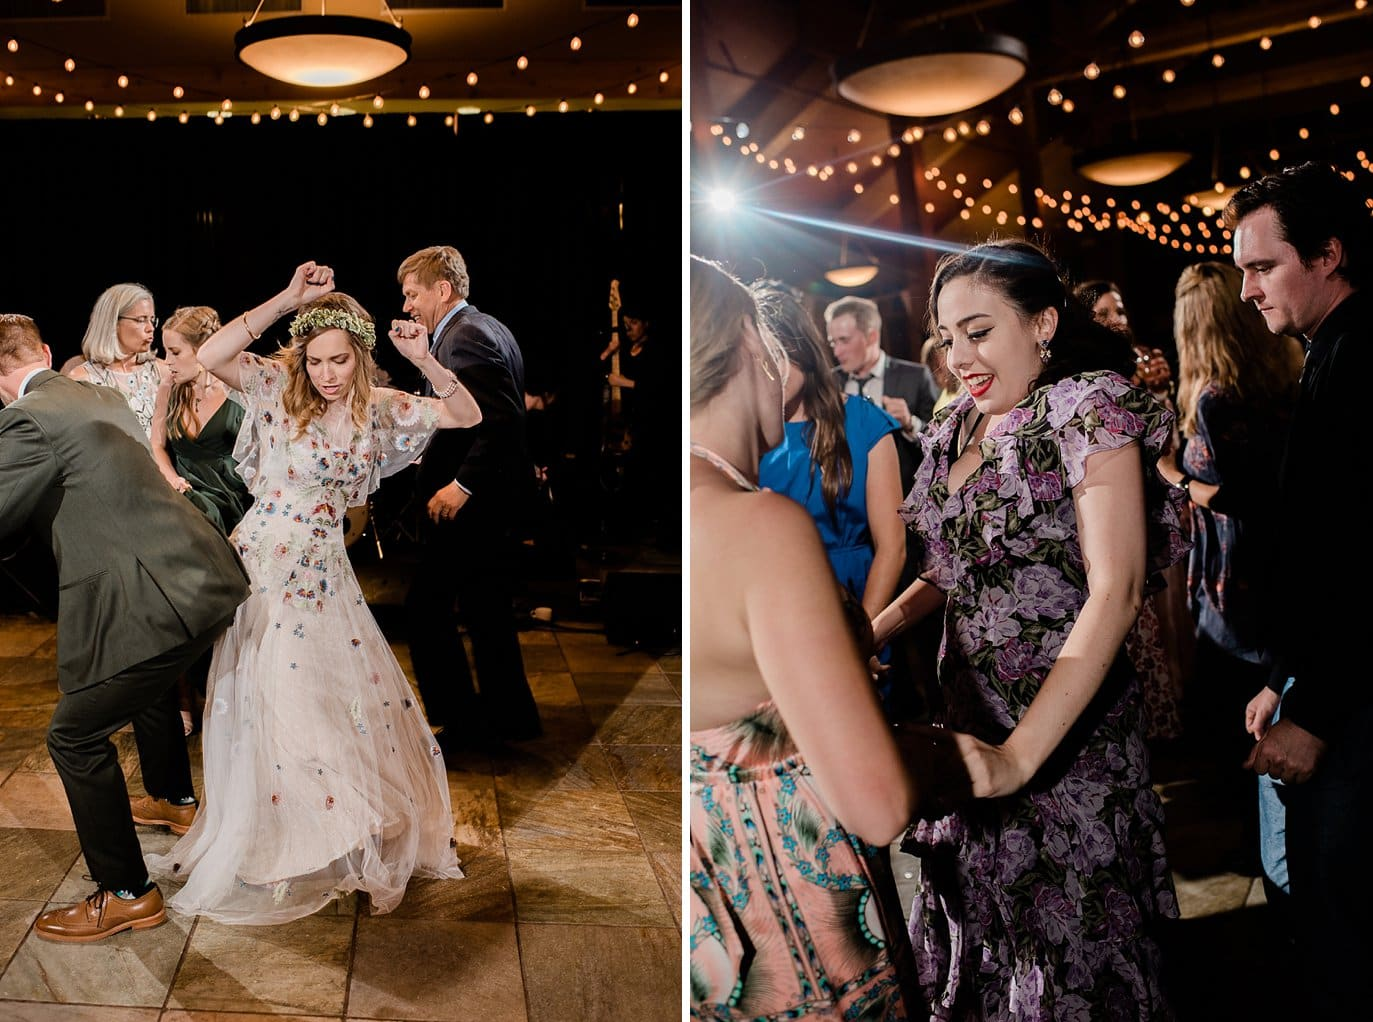 dance party at Black Mountain lodge wedding by Keystone wedding photographer Jennie Crate Photographer